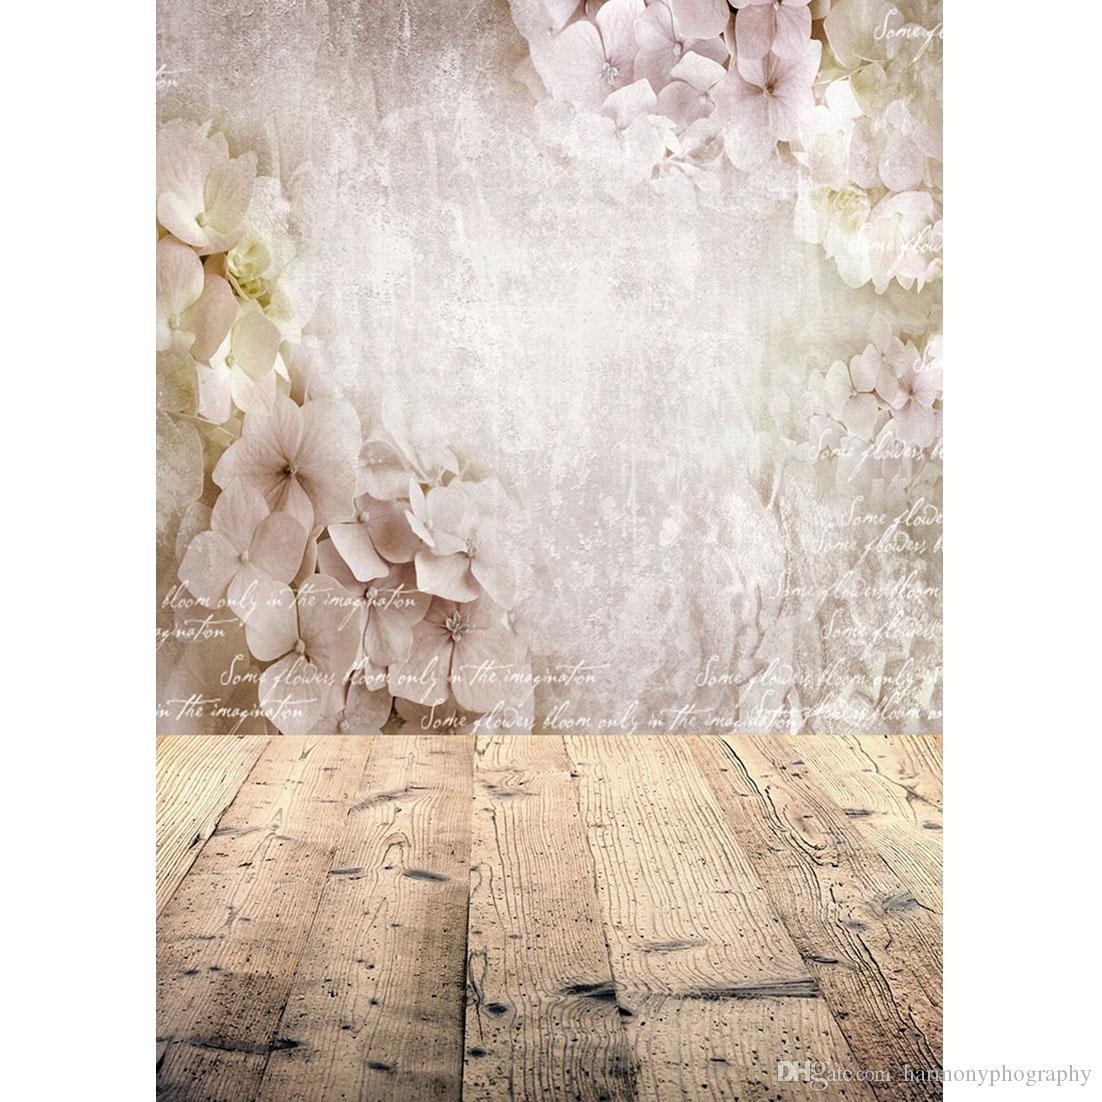 2020 Flower Wooden Floor Photography Backdrops Computer Printed Photoshoot Background For Children Baby Lovers Portrait Phtoto Studio From Harmonyphography 15 76 Dhgate Com